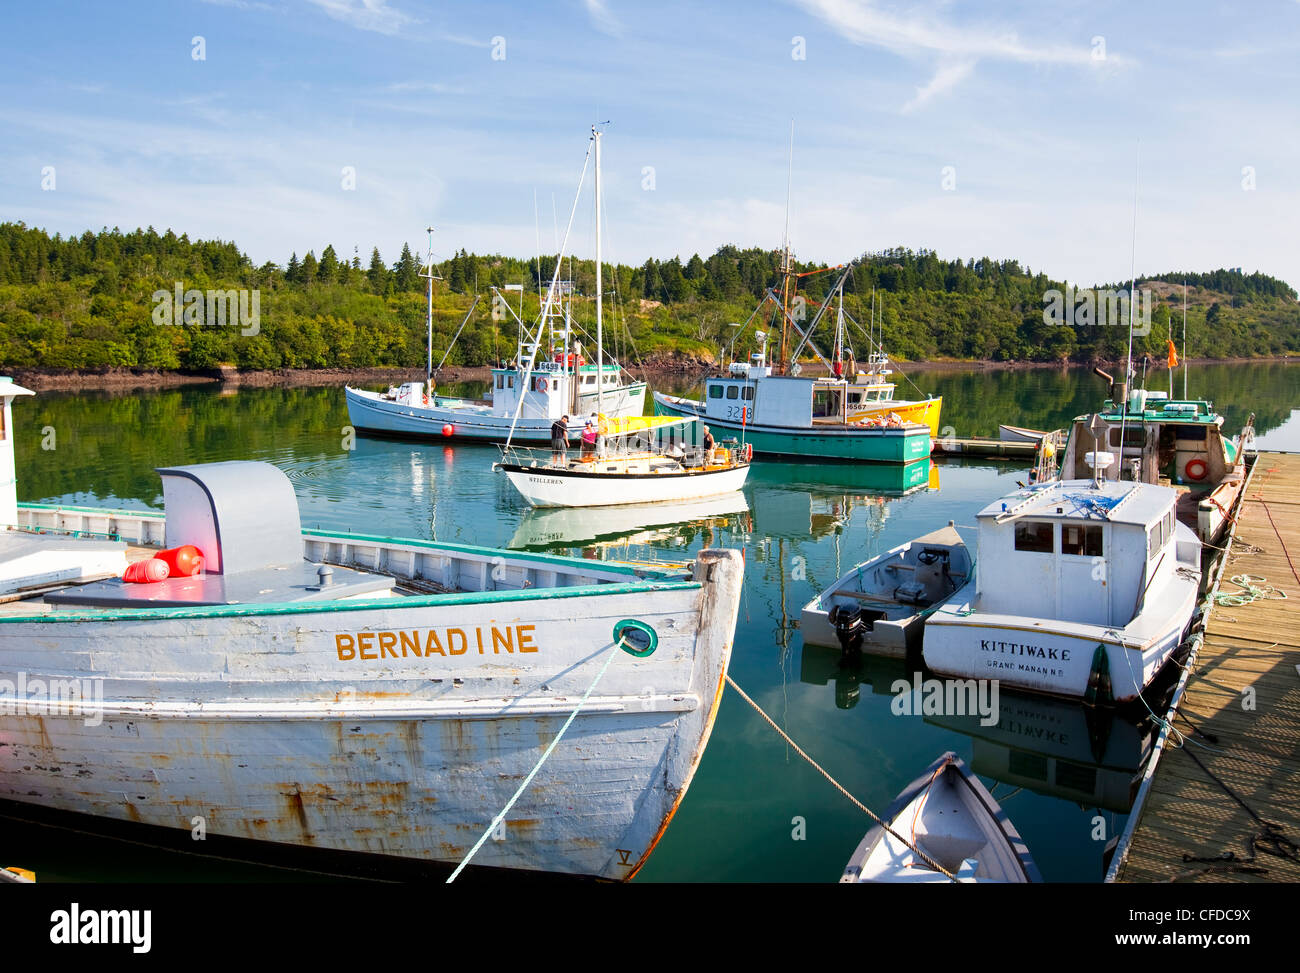 Fishing boats tied up at wharf, Black's Harbour, Bay of Fundy, New Brunswick, Canada - Stock Image